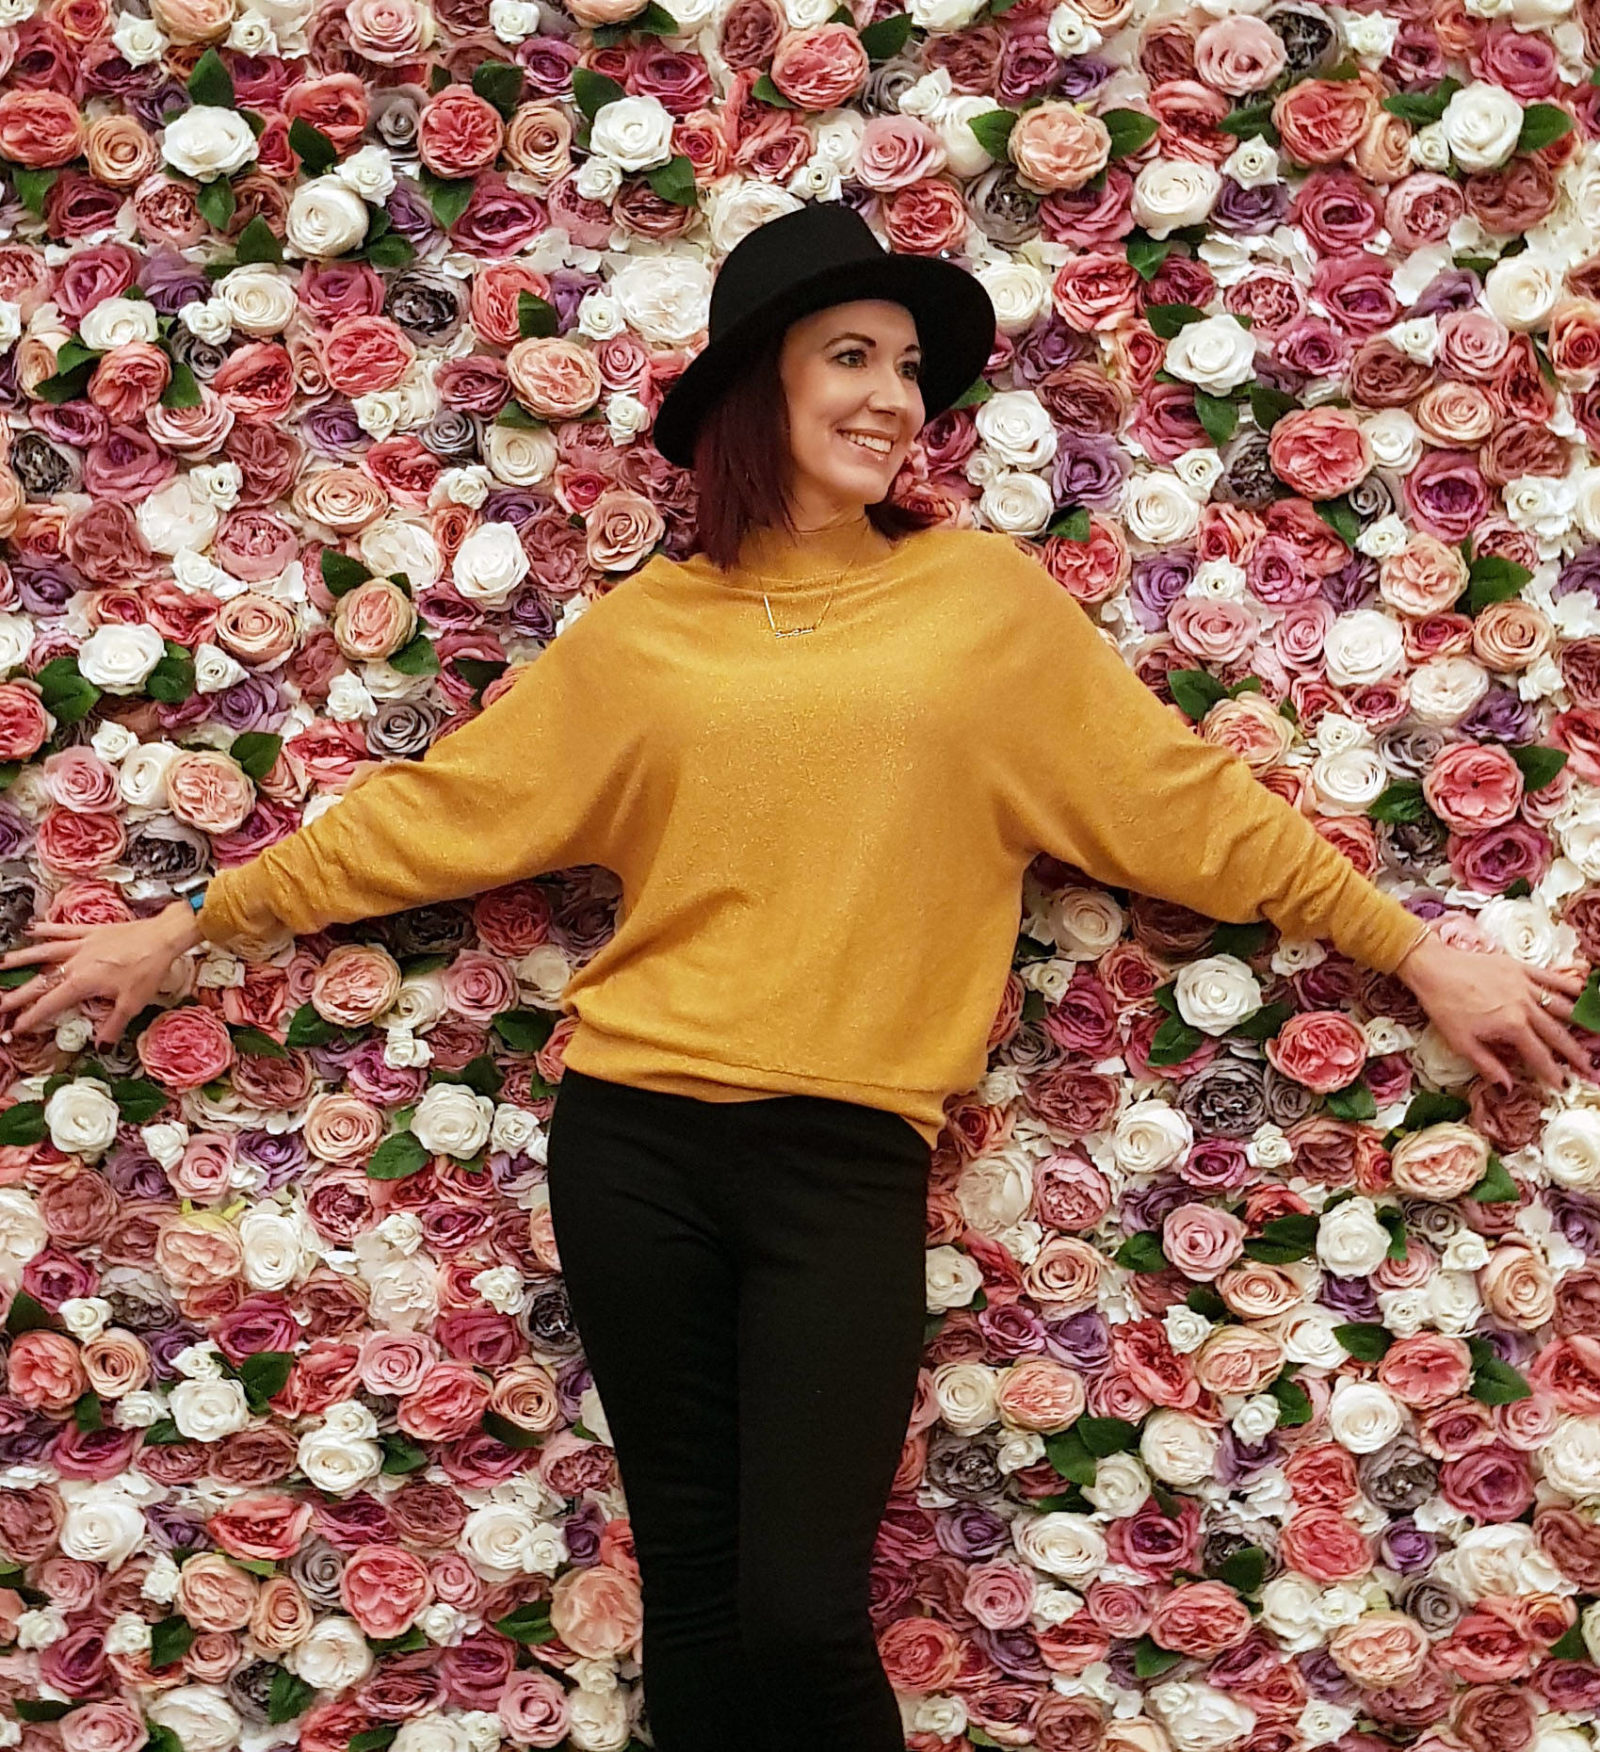 Blogosphere Festival 2018, flower wall